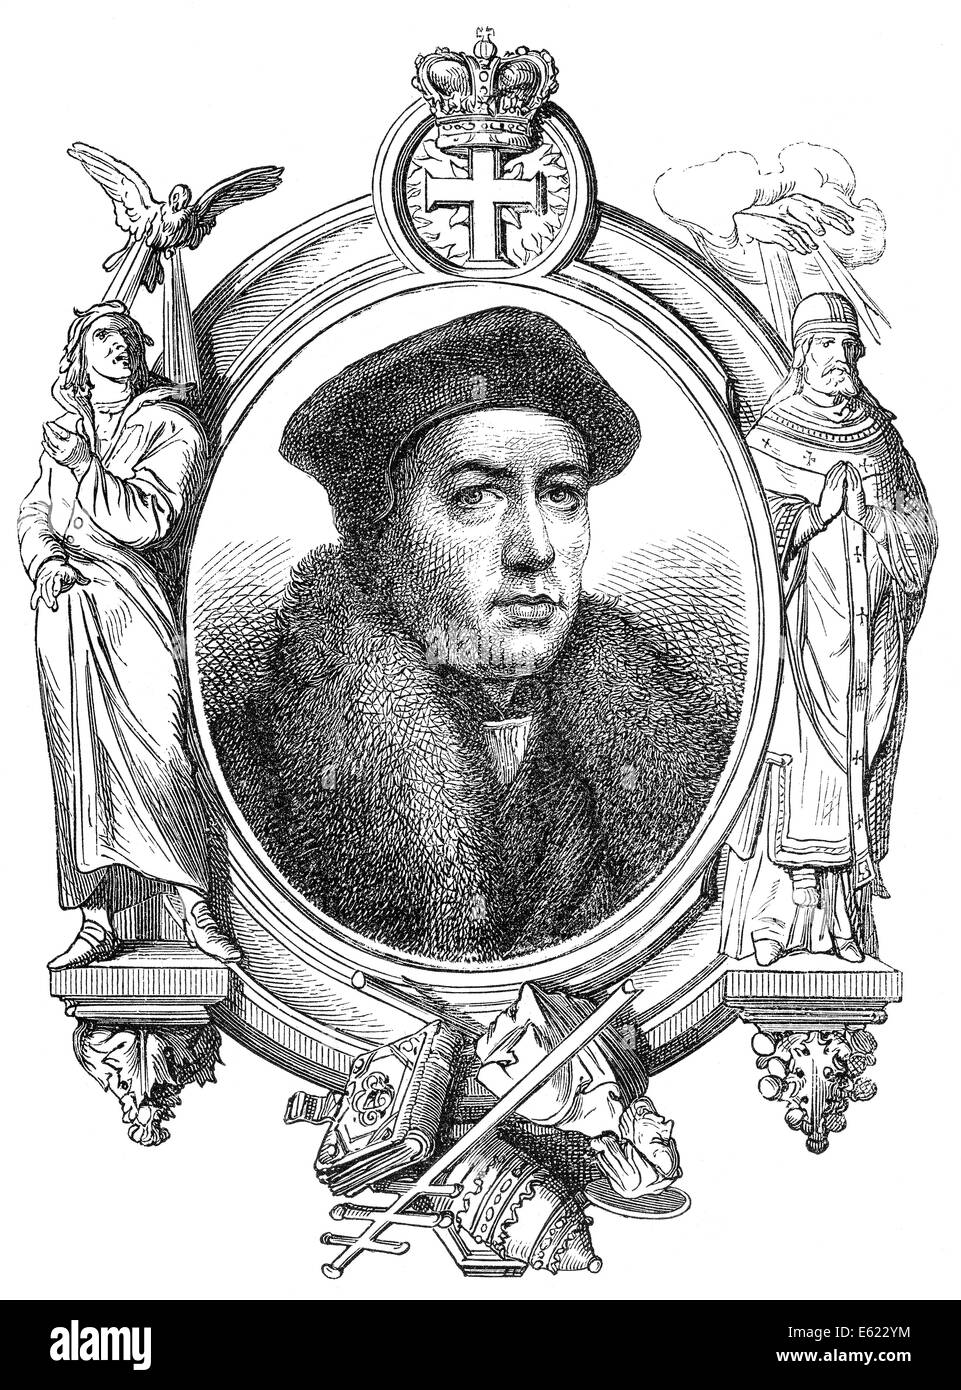 Thomas Cranmer, 1489-1556, a leader of the English Reformation and Archbishop of Canterbury, - Stock Image